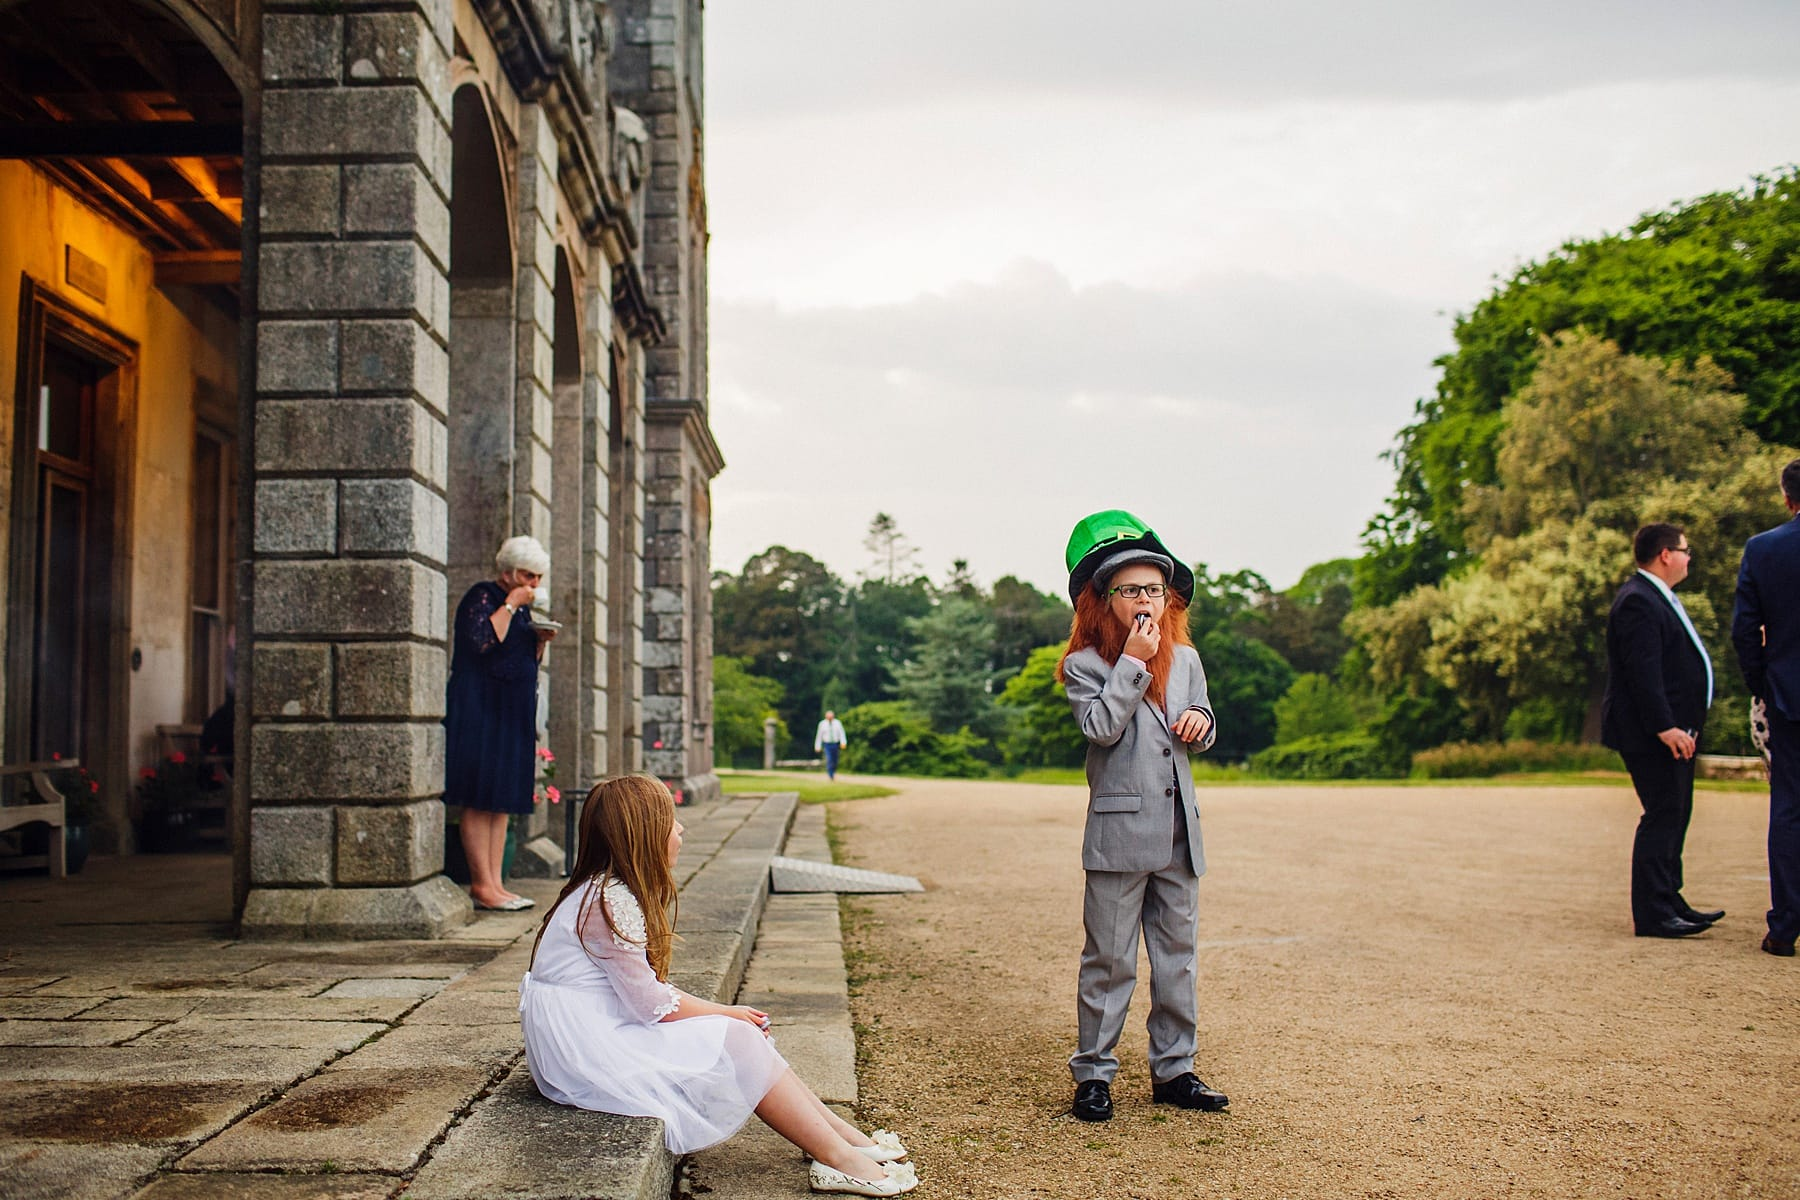 first look wedding photography,ireland wedding photographer,glenview hotel,cliff at lyons,trinity college dublin,port eliot wedding,langton house hotel,borris house,